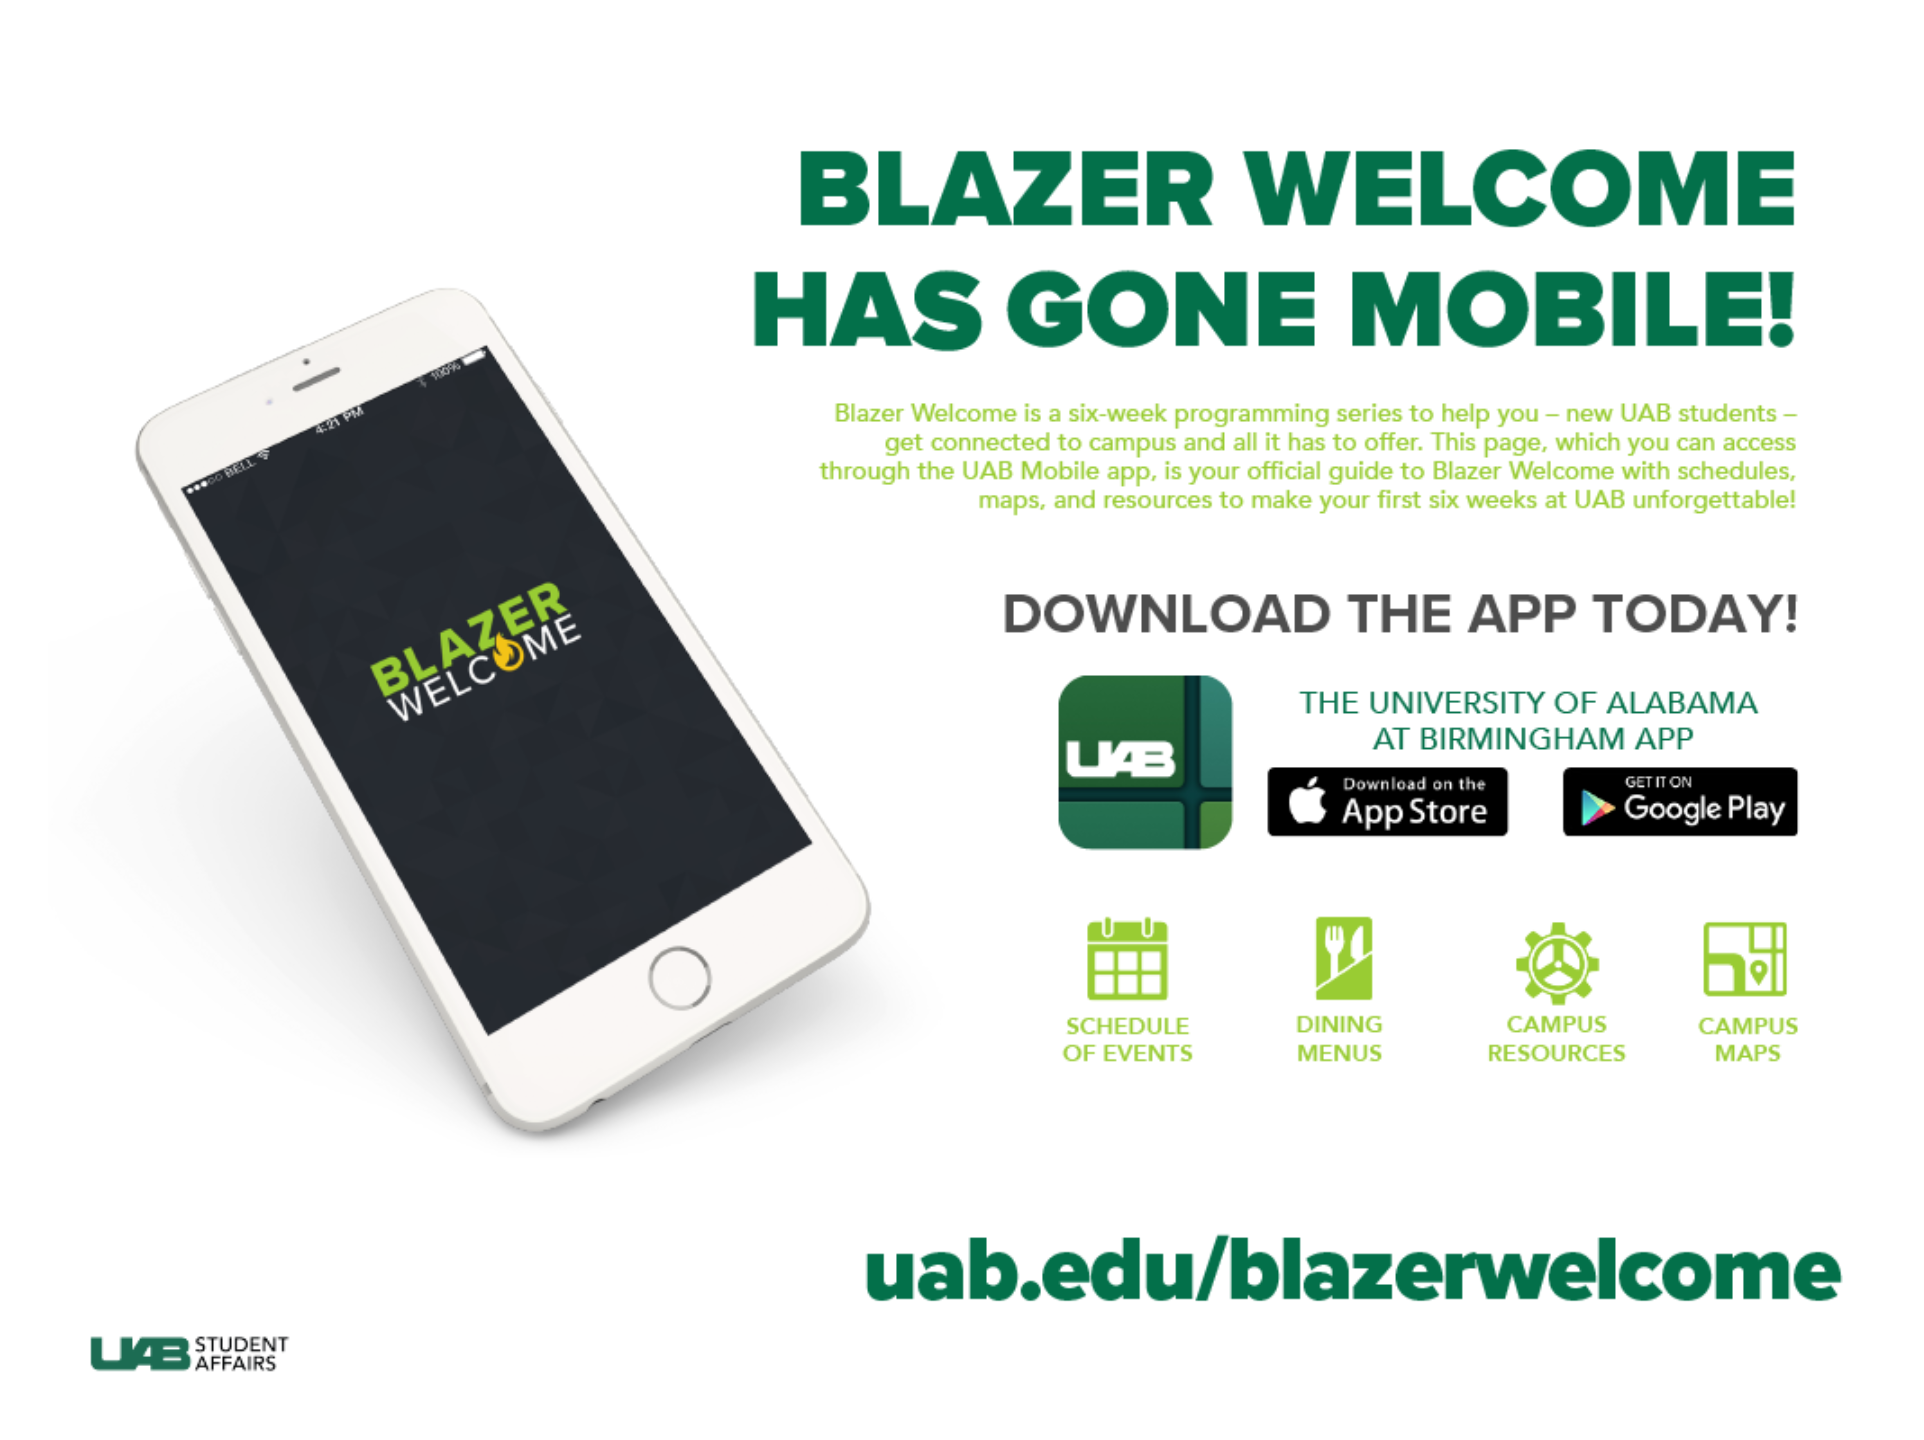 Blazer Welcome